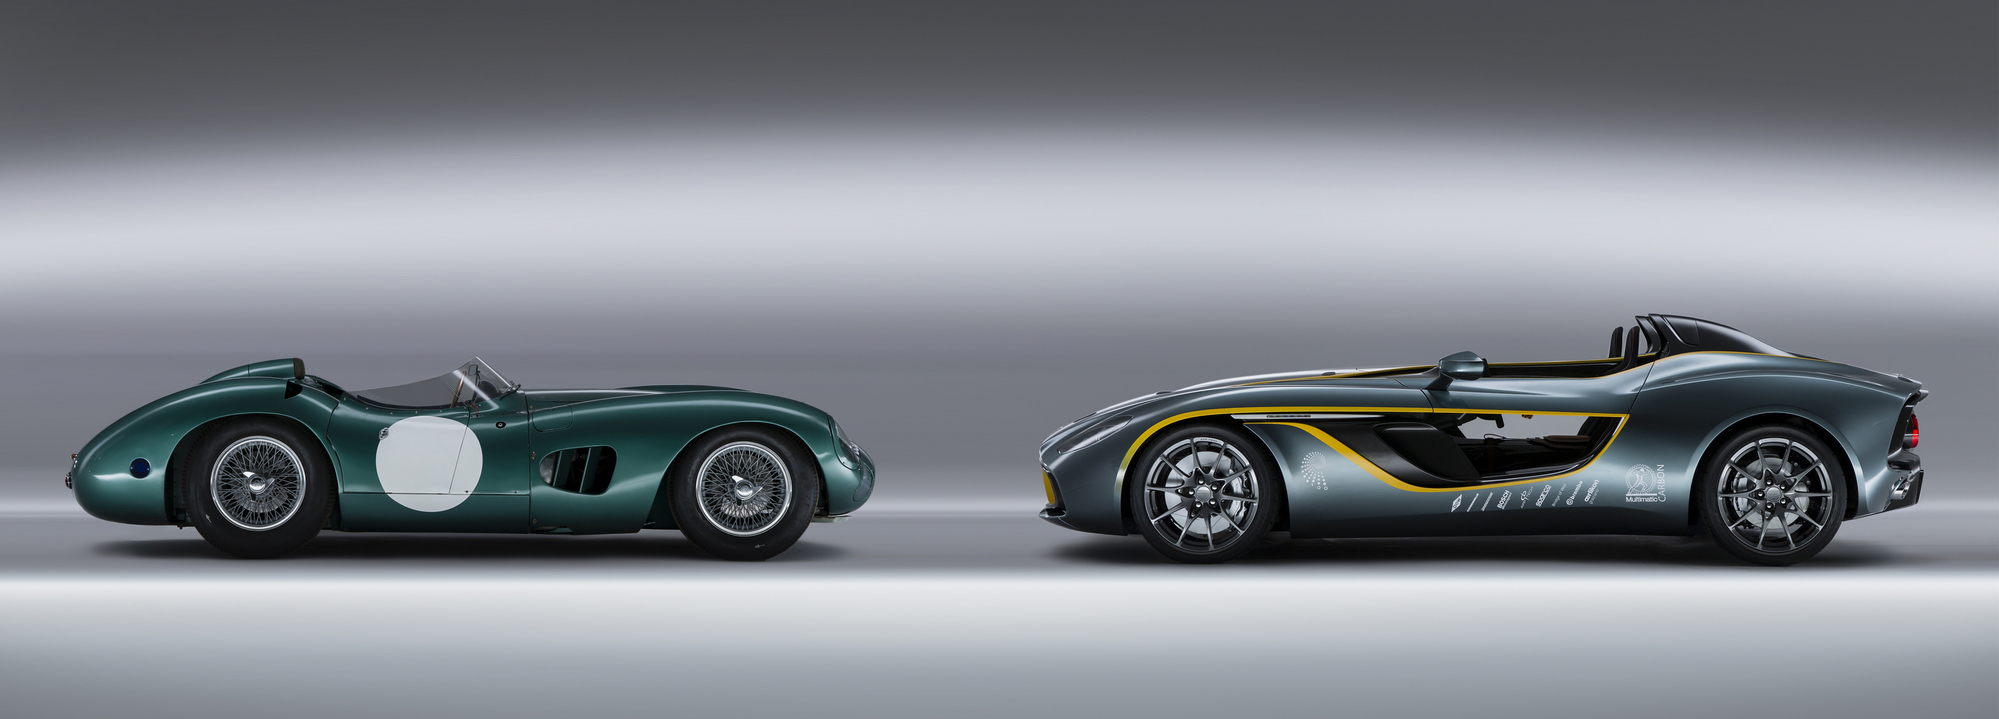 Aston Martin CC Celebrates A Century Of British Sports Cars - Modern sports cars